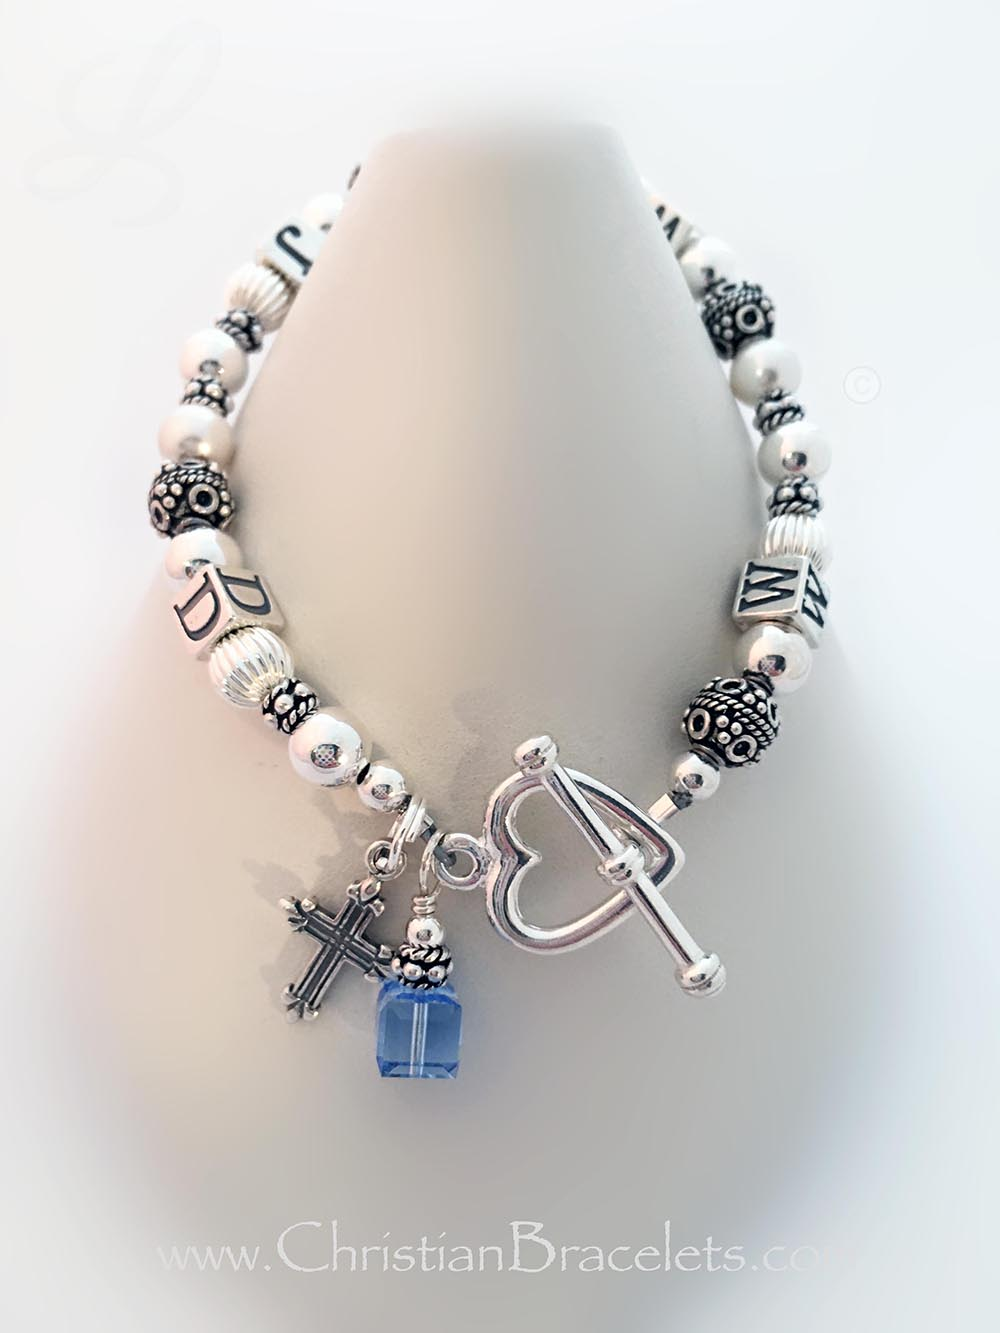 CB- WWJD-1S  WWJD Bracelet is shown with 3 add-ons...  They upgraded to a Heart Toggle Clasp and added a December or Blue Topaz Birthstone Charm and a Fancy Cross Charm.